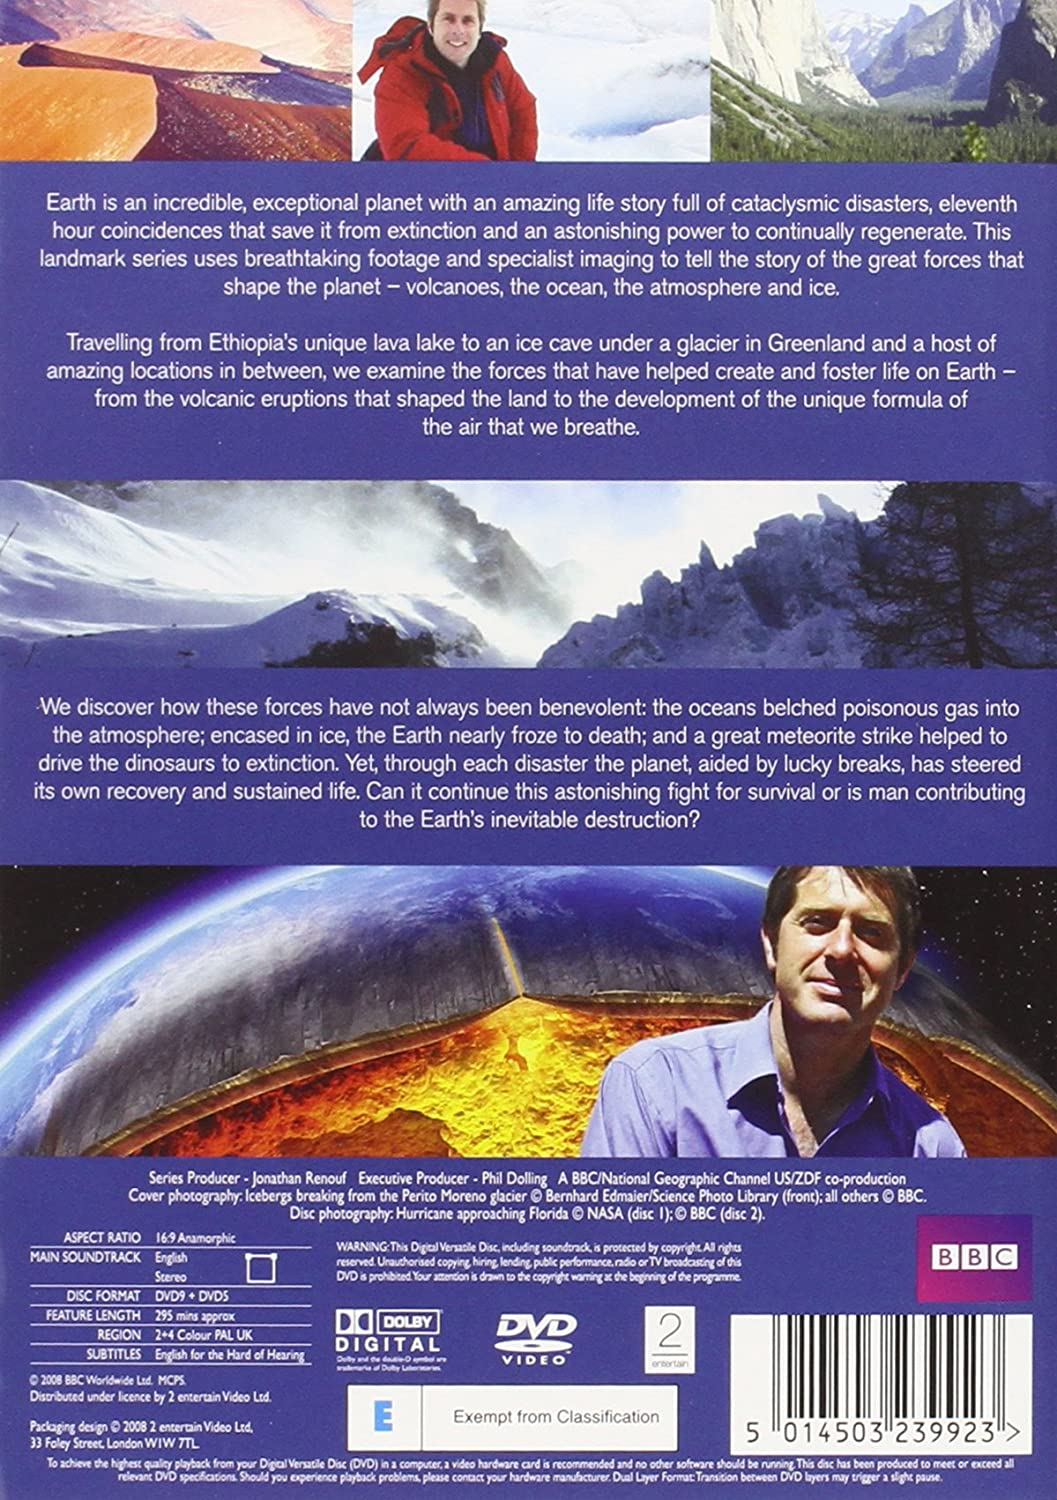 Bbc earth power of the planet 5 episodes x264 720p ac3 desibbrg com